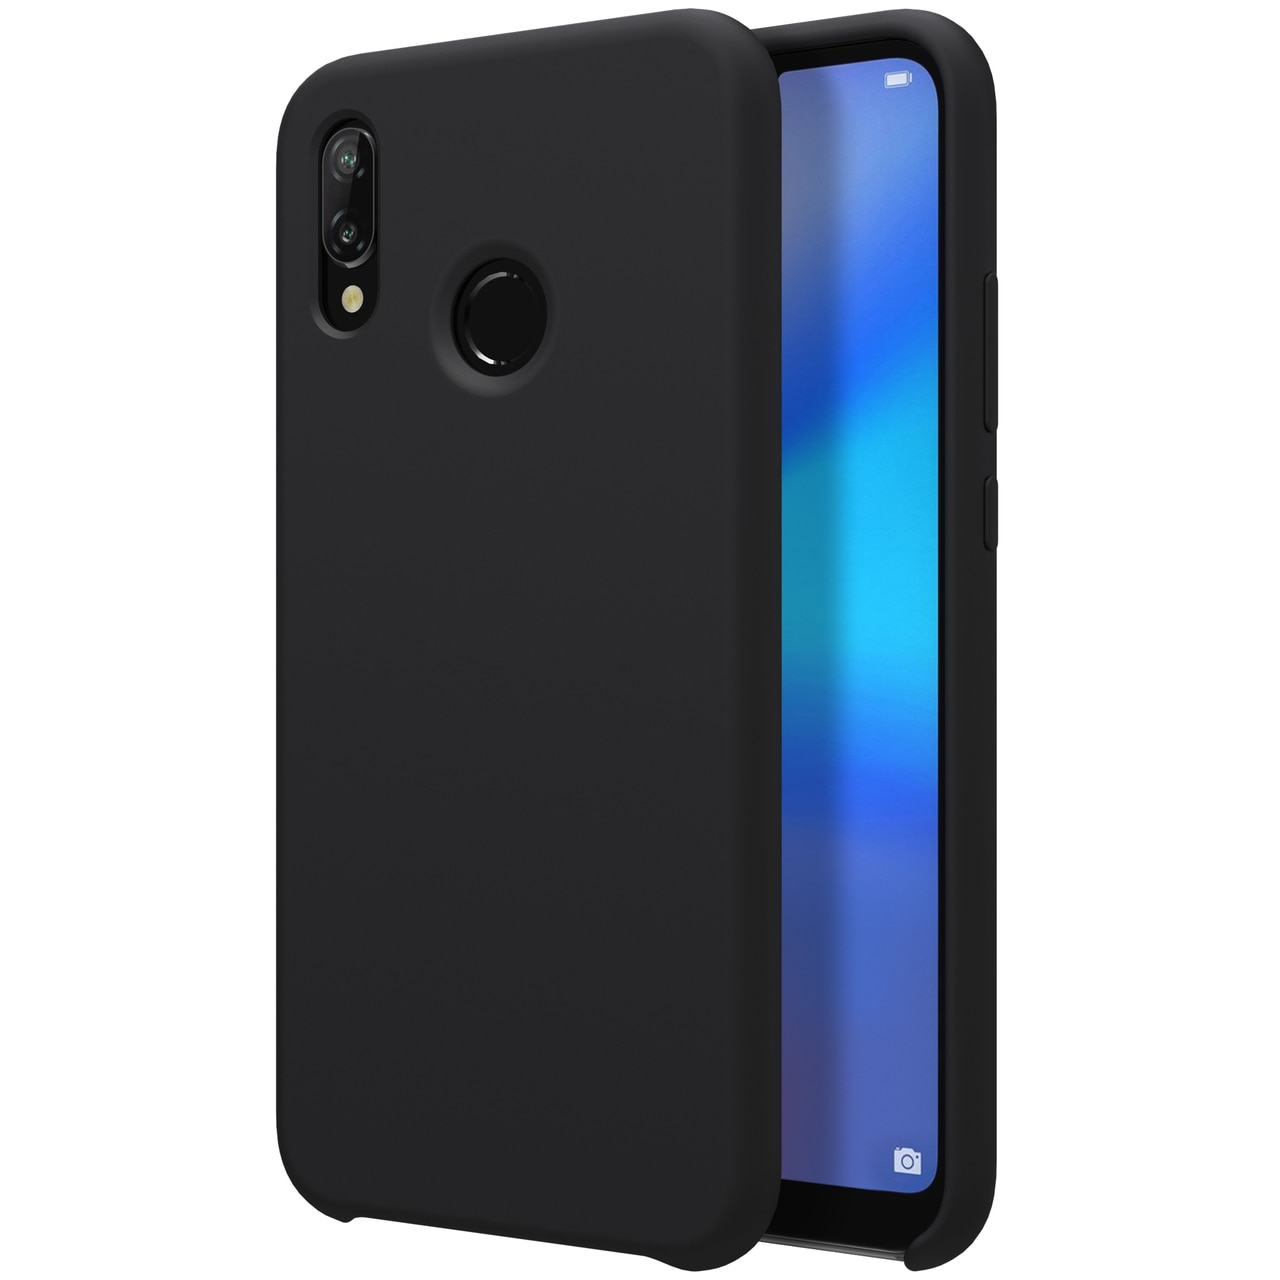 Huawei P20 Lite Flex Pure Soft Premium TPU Case by Nillkin - Black